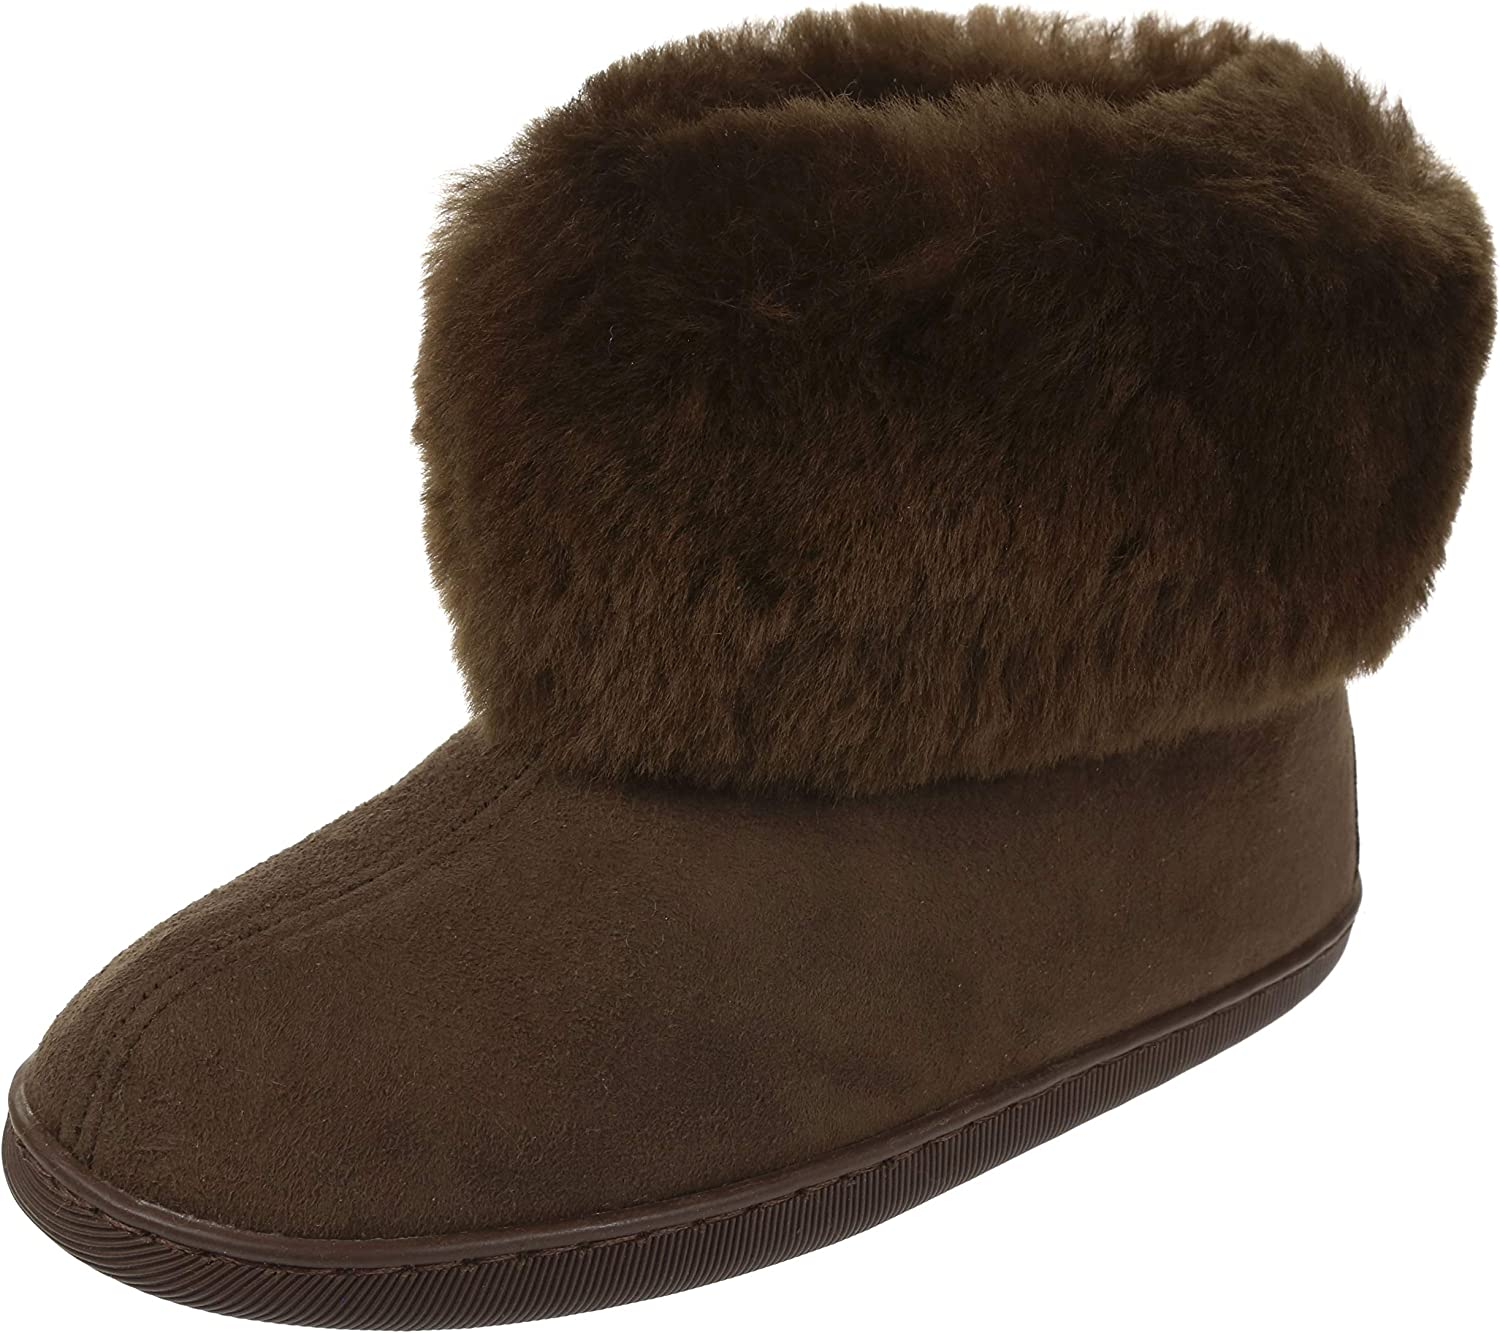 Vogar Womens Sheepskin Leather Furry Ankle Slippers VG-11M Boots Sheep Wool Lined